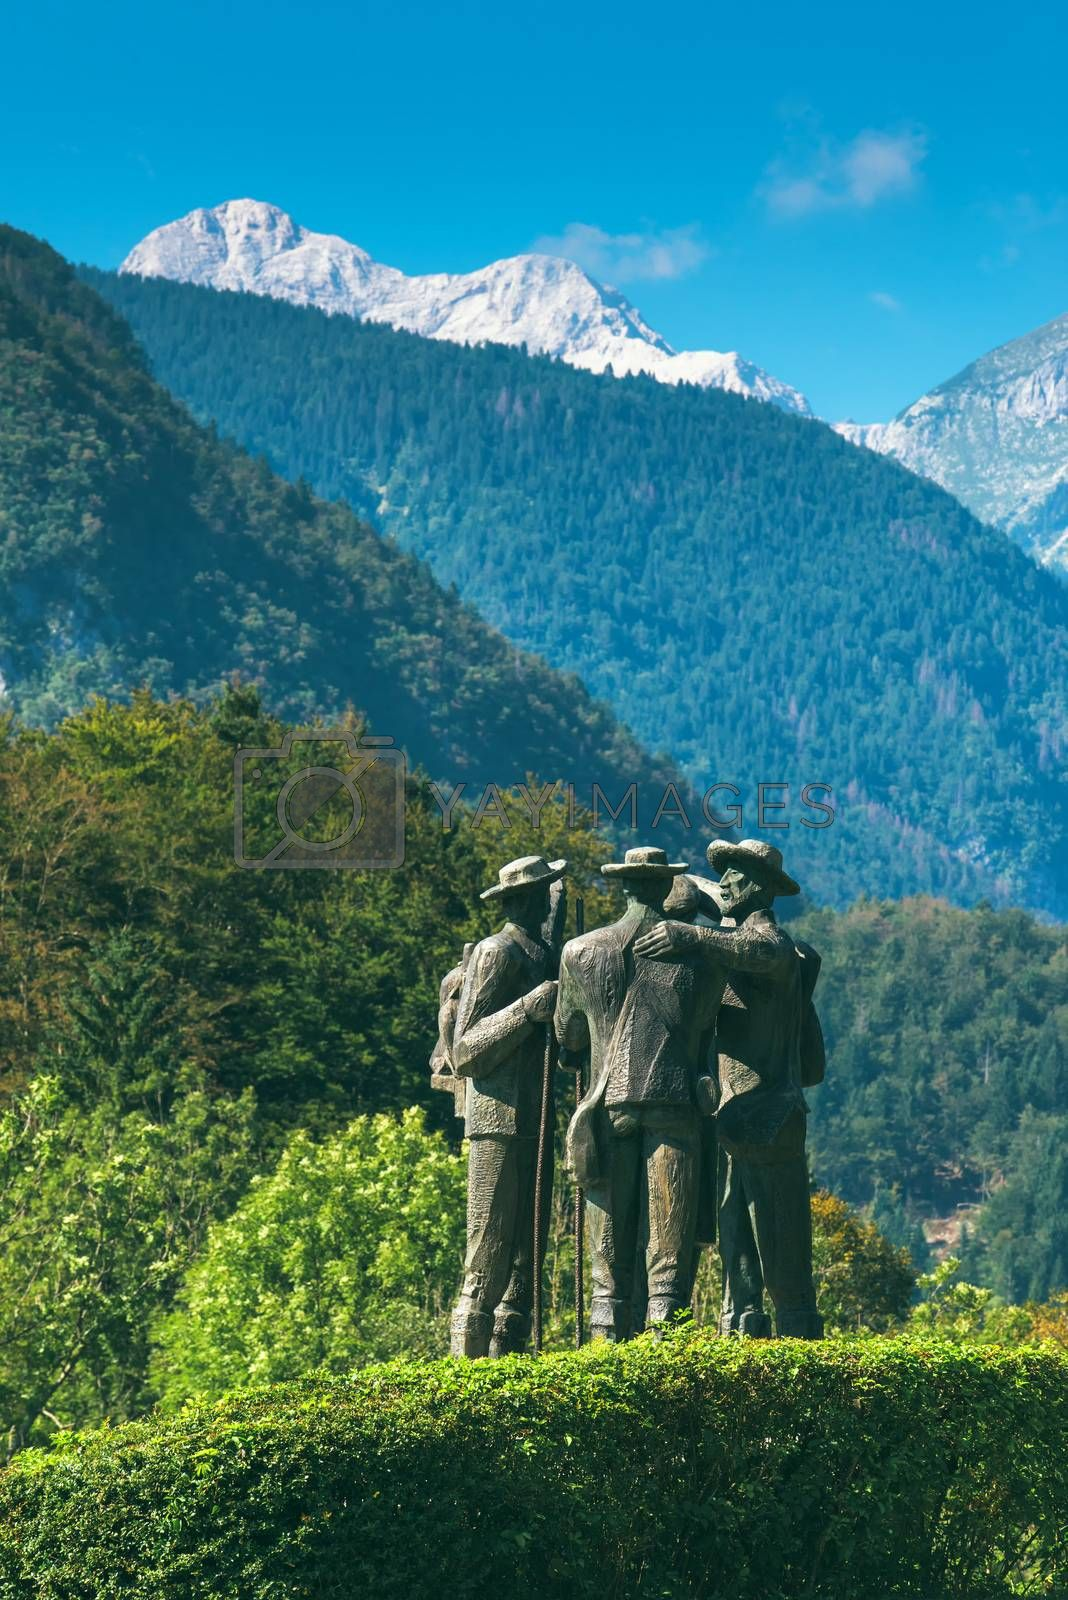 RIBCEV LAZ, SLOVENIA - AUGUST 25, 2016: Four brave men from Bohinj - the first men on Triglav. Statue of Bohinj natives that climbed highest mountain in Slovenia on August 26th in 1778.